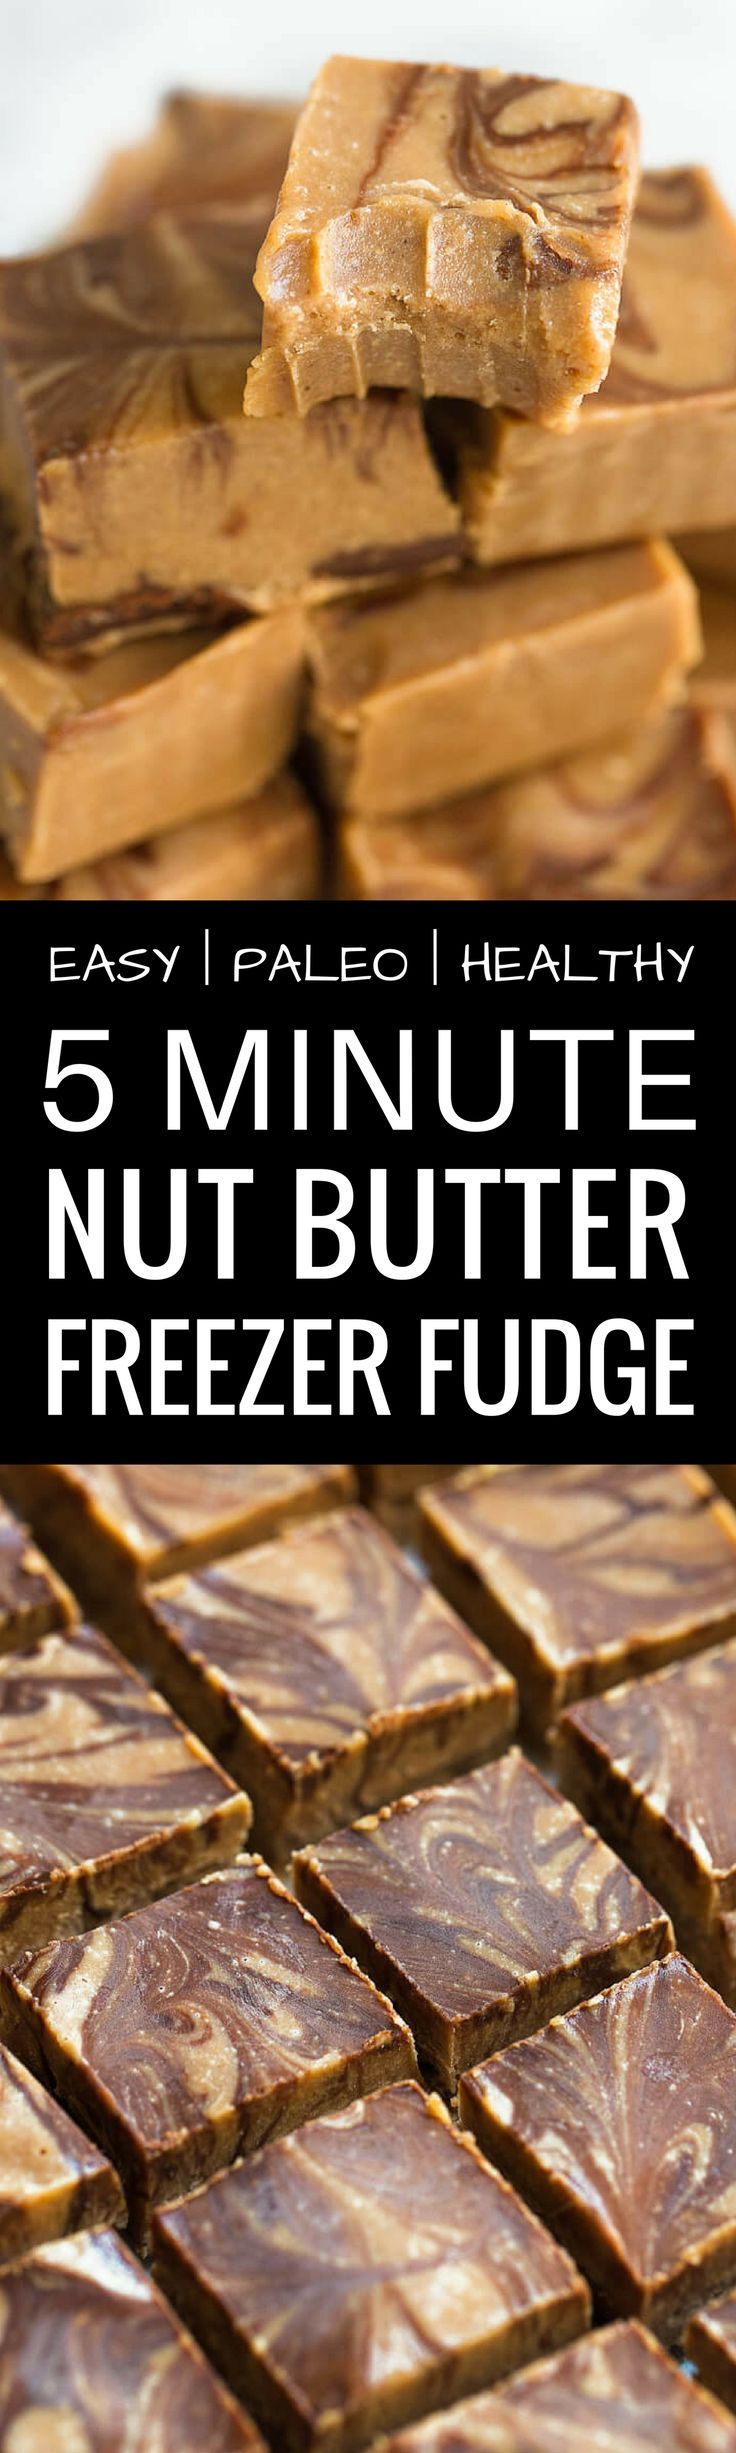 Healthy Nut Butter Freezer Fudge. This quick and easy paleo fudge recipe has all of the healthy fats, plenty of protein and is low carb! Healthy peanut butter fudge recipe. Low carb freezer fudge. Vegan freezer fudge. Paleo nut butter fudge. Cashew butter fudge. Vegan fudge recipe. Raw fudge. This recipe is completely gluten free, dairy free & refined sugar free! A delicious snack or dessert!